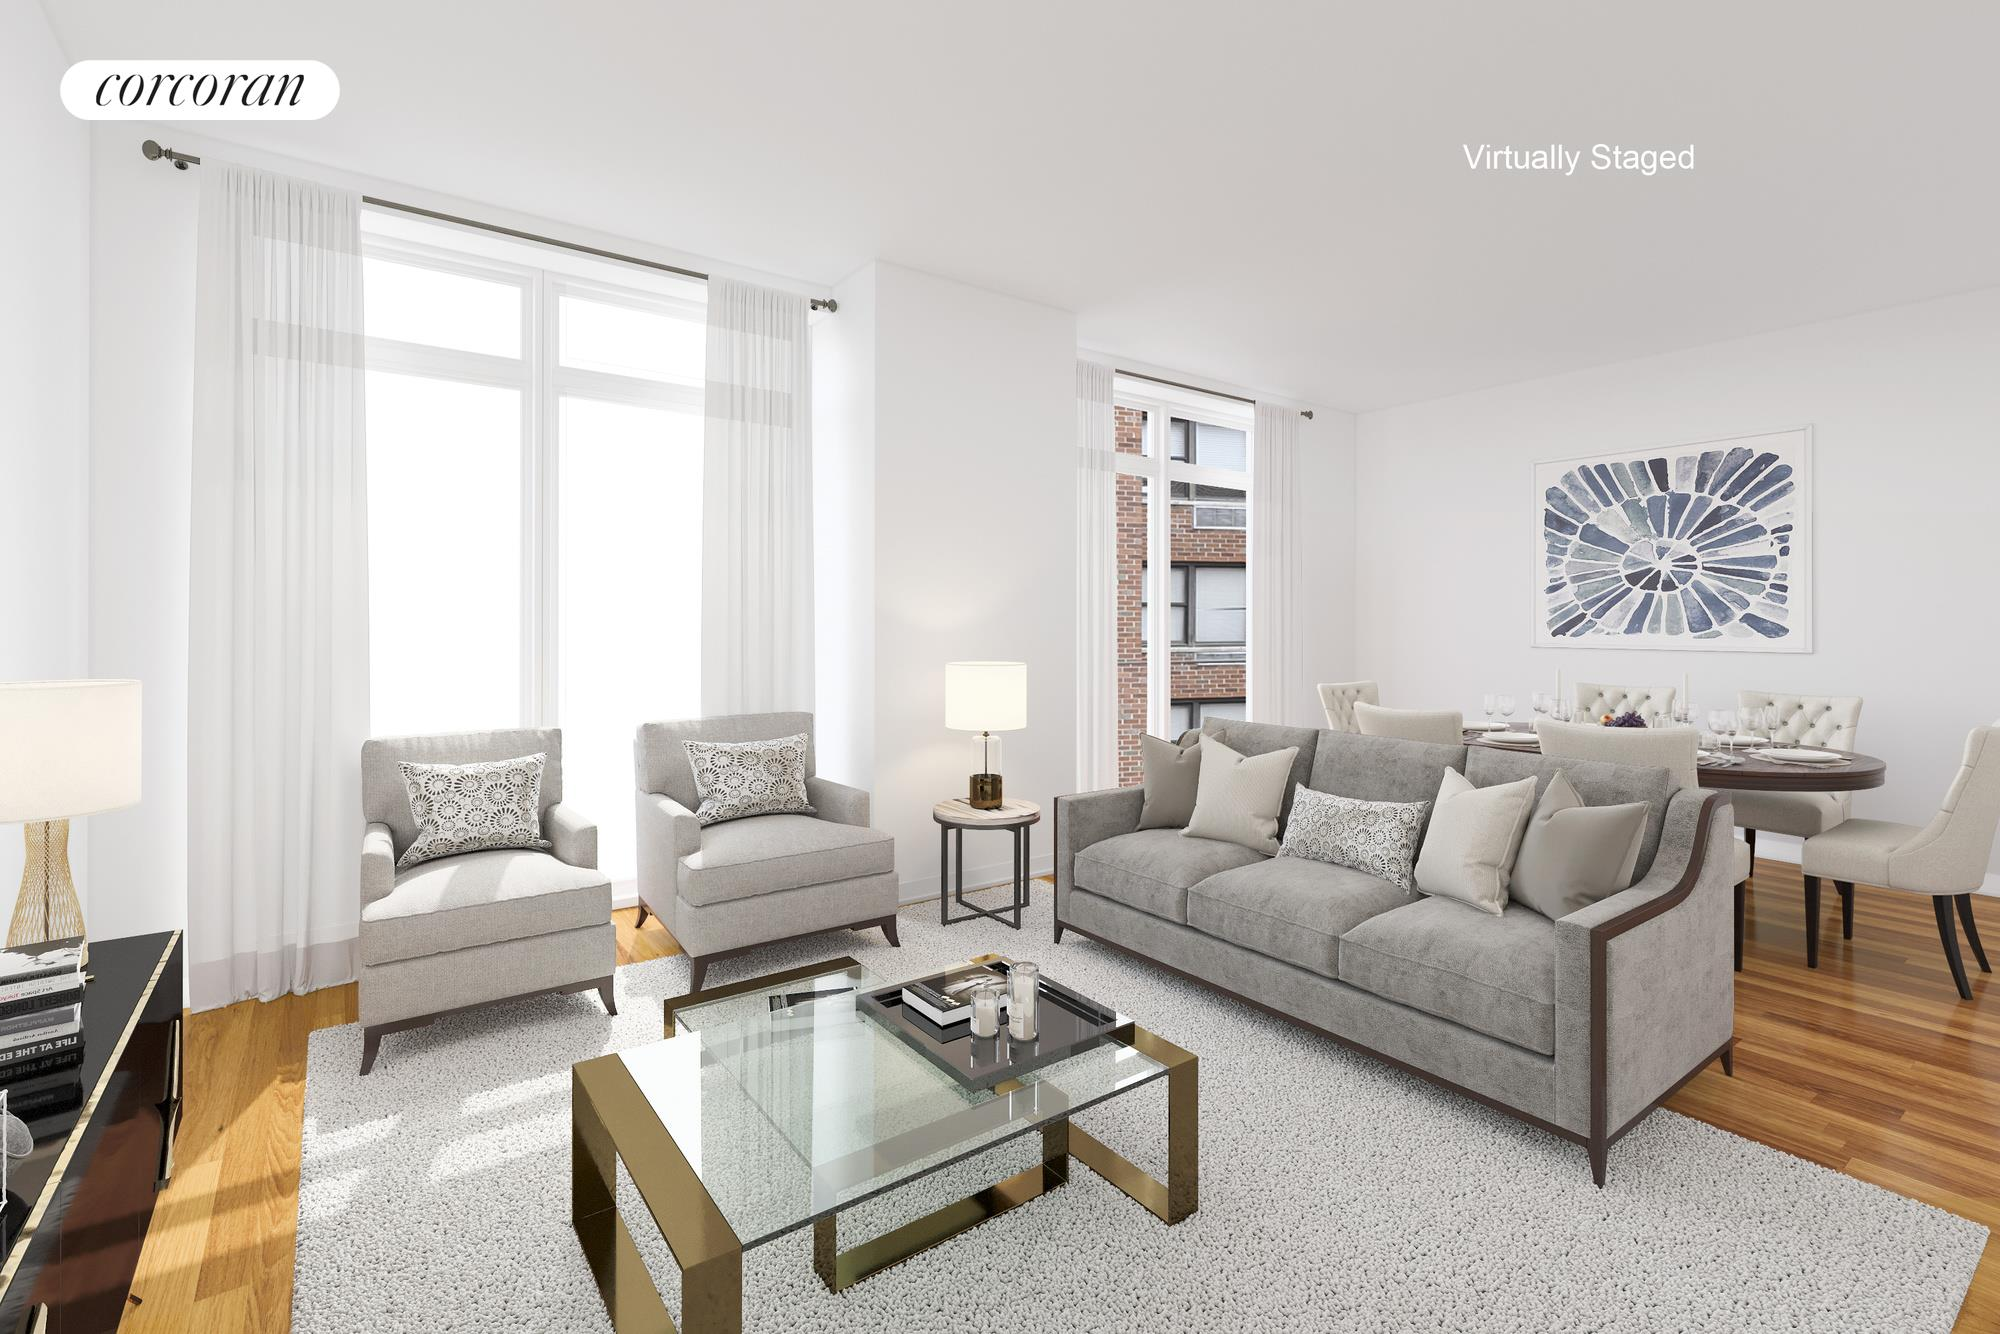 310 West 52nd Street, TH2, virtual design